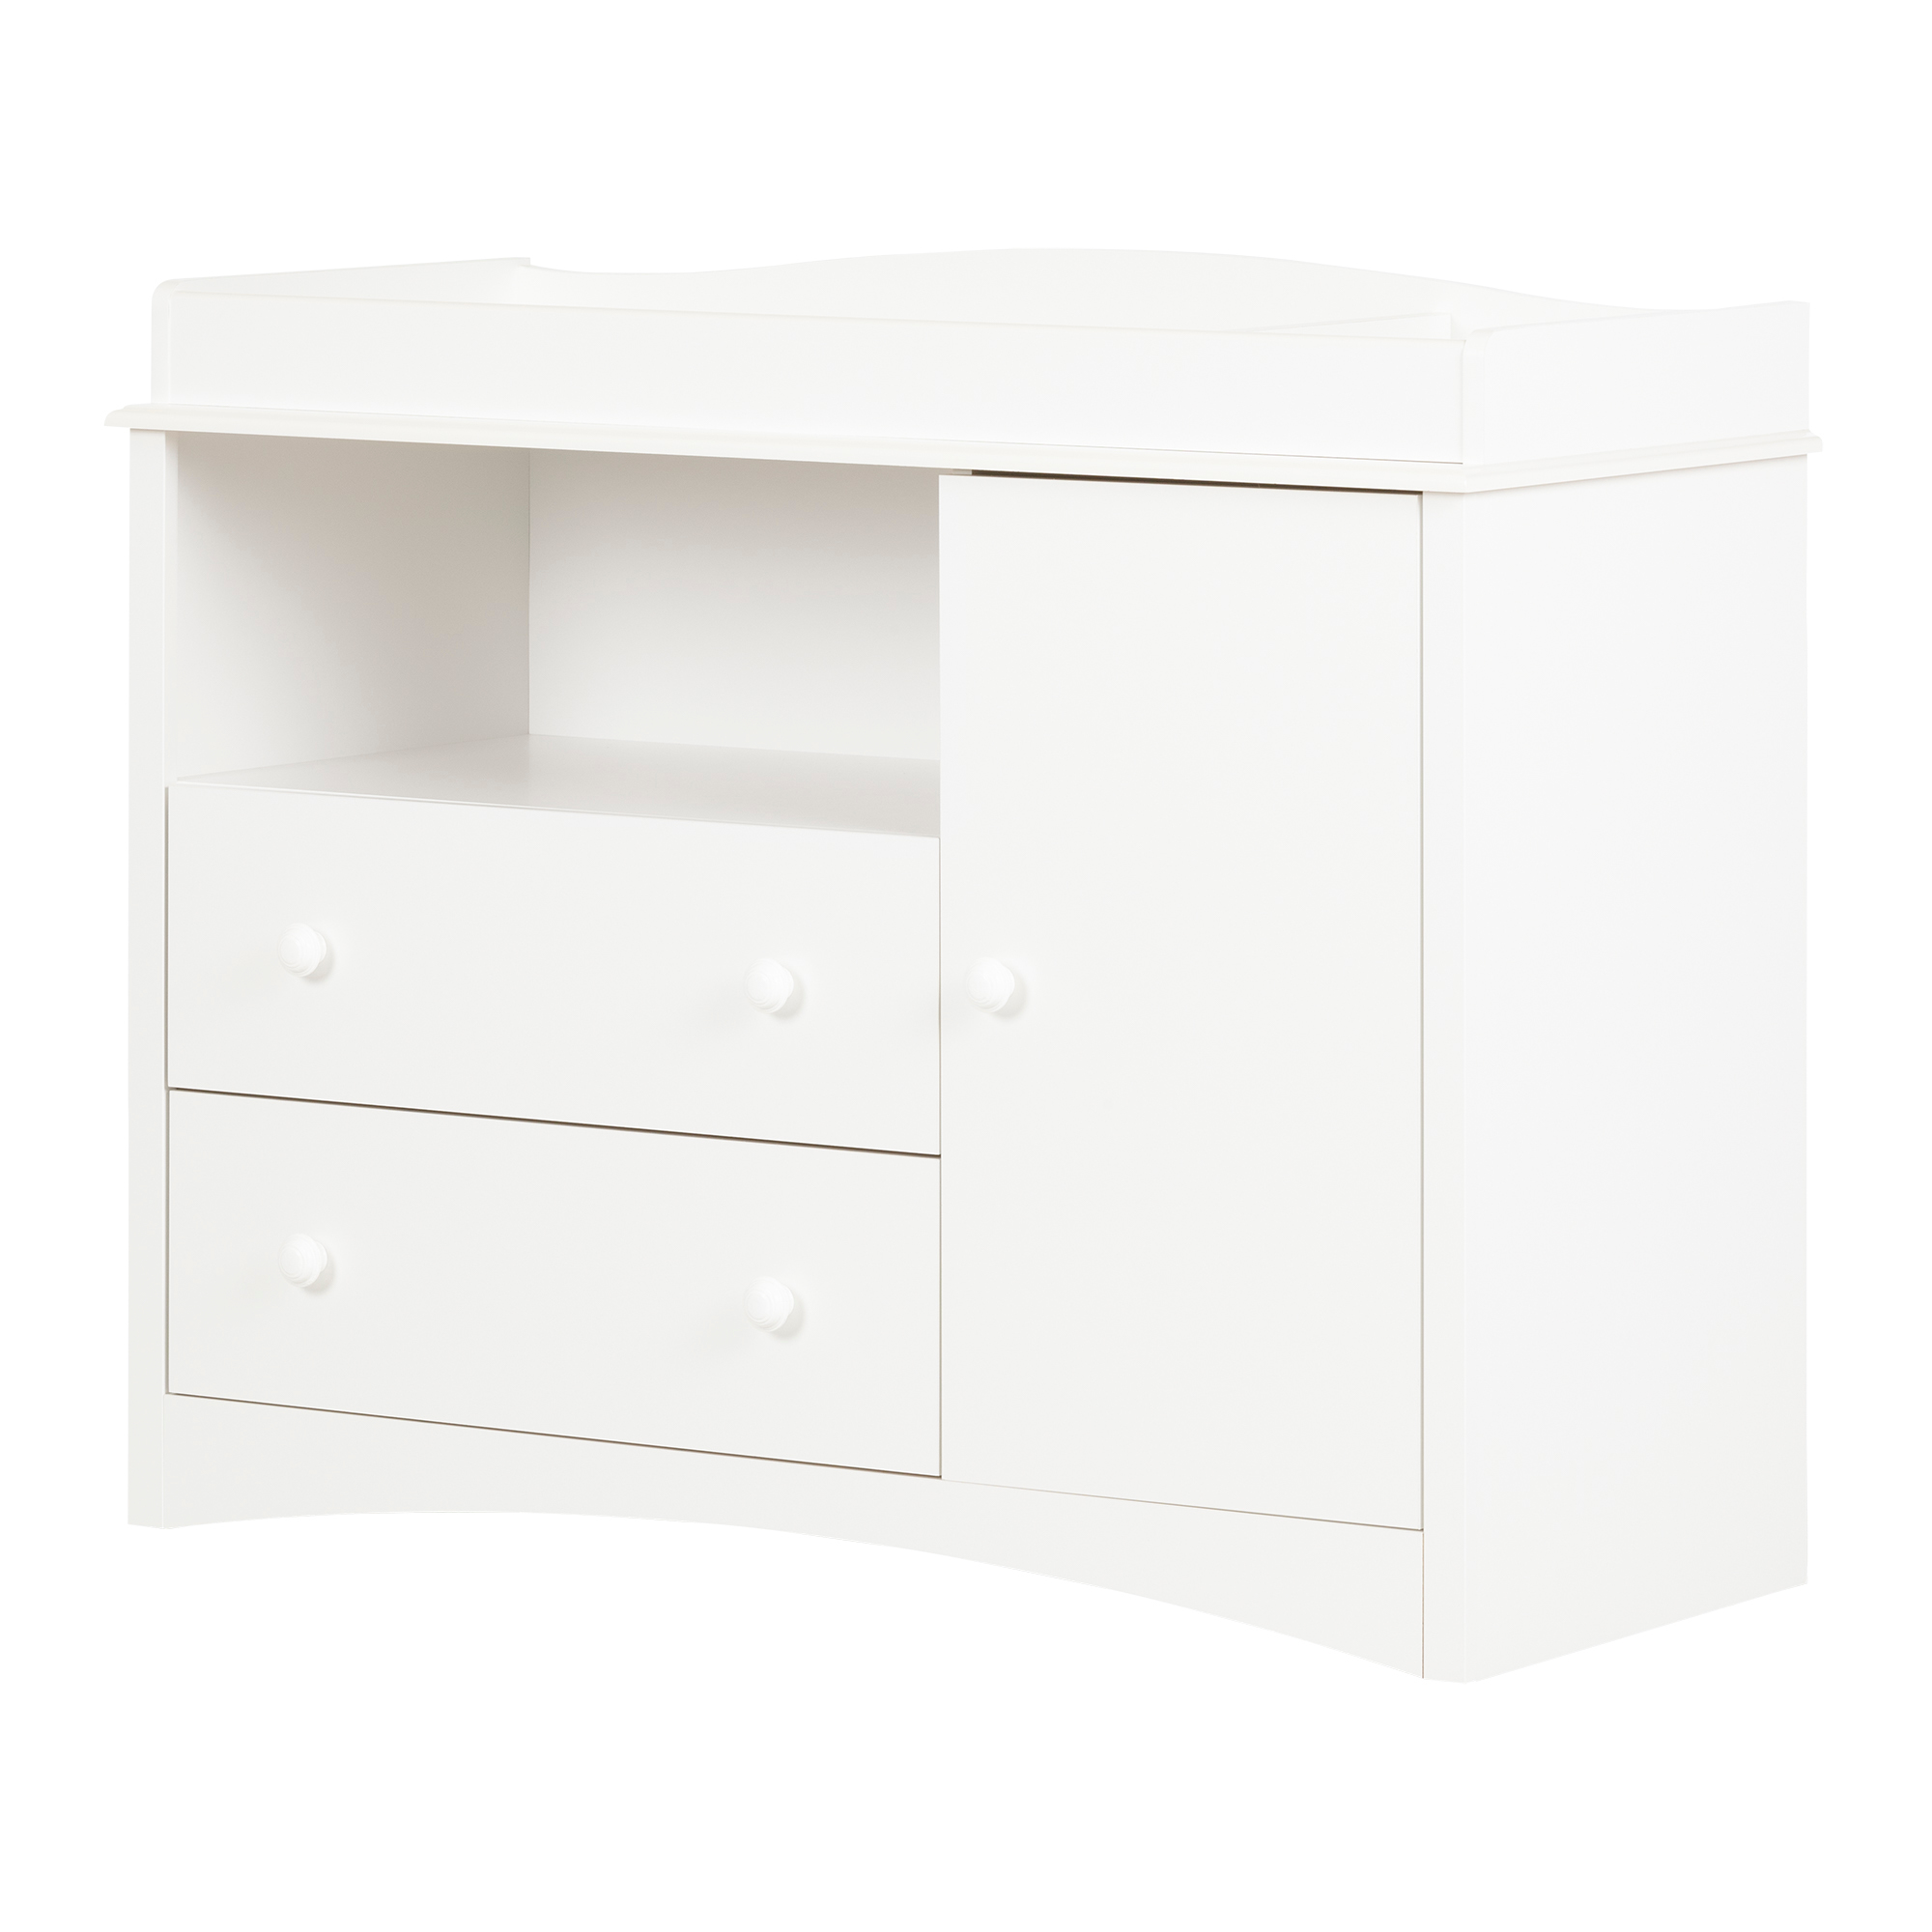 South Shore Peak-a-boo Changing Table, White by South Shore Furniture